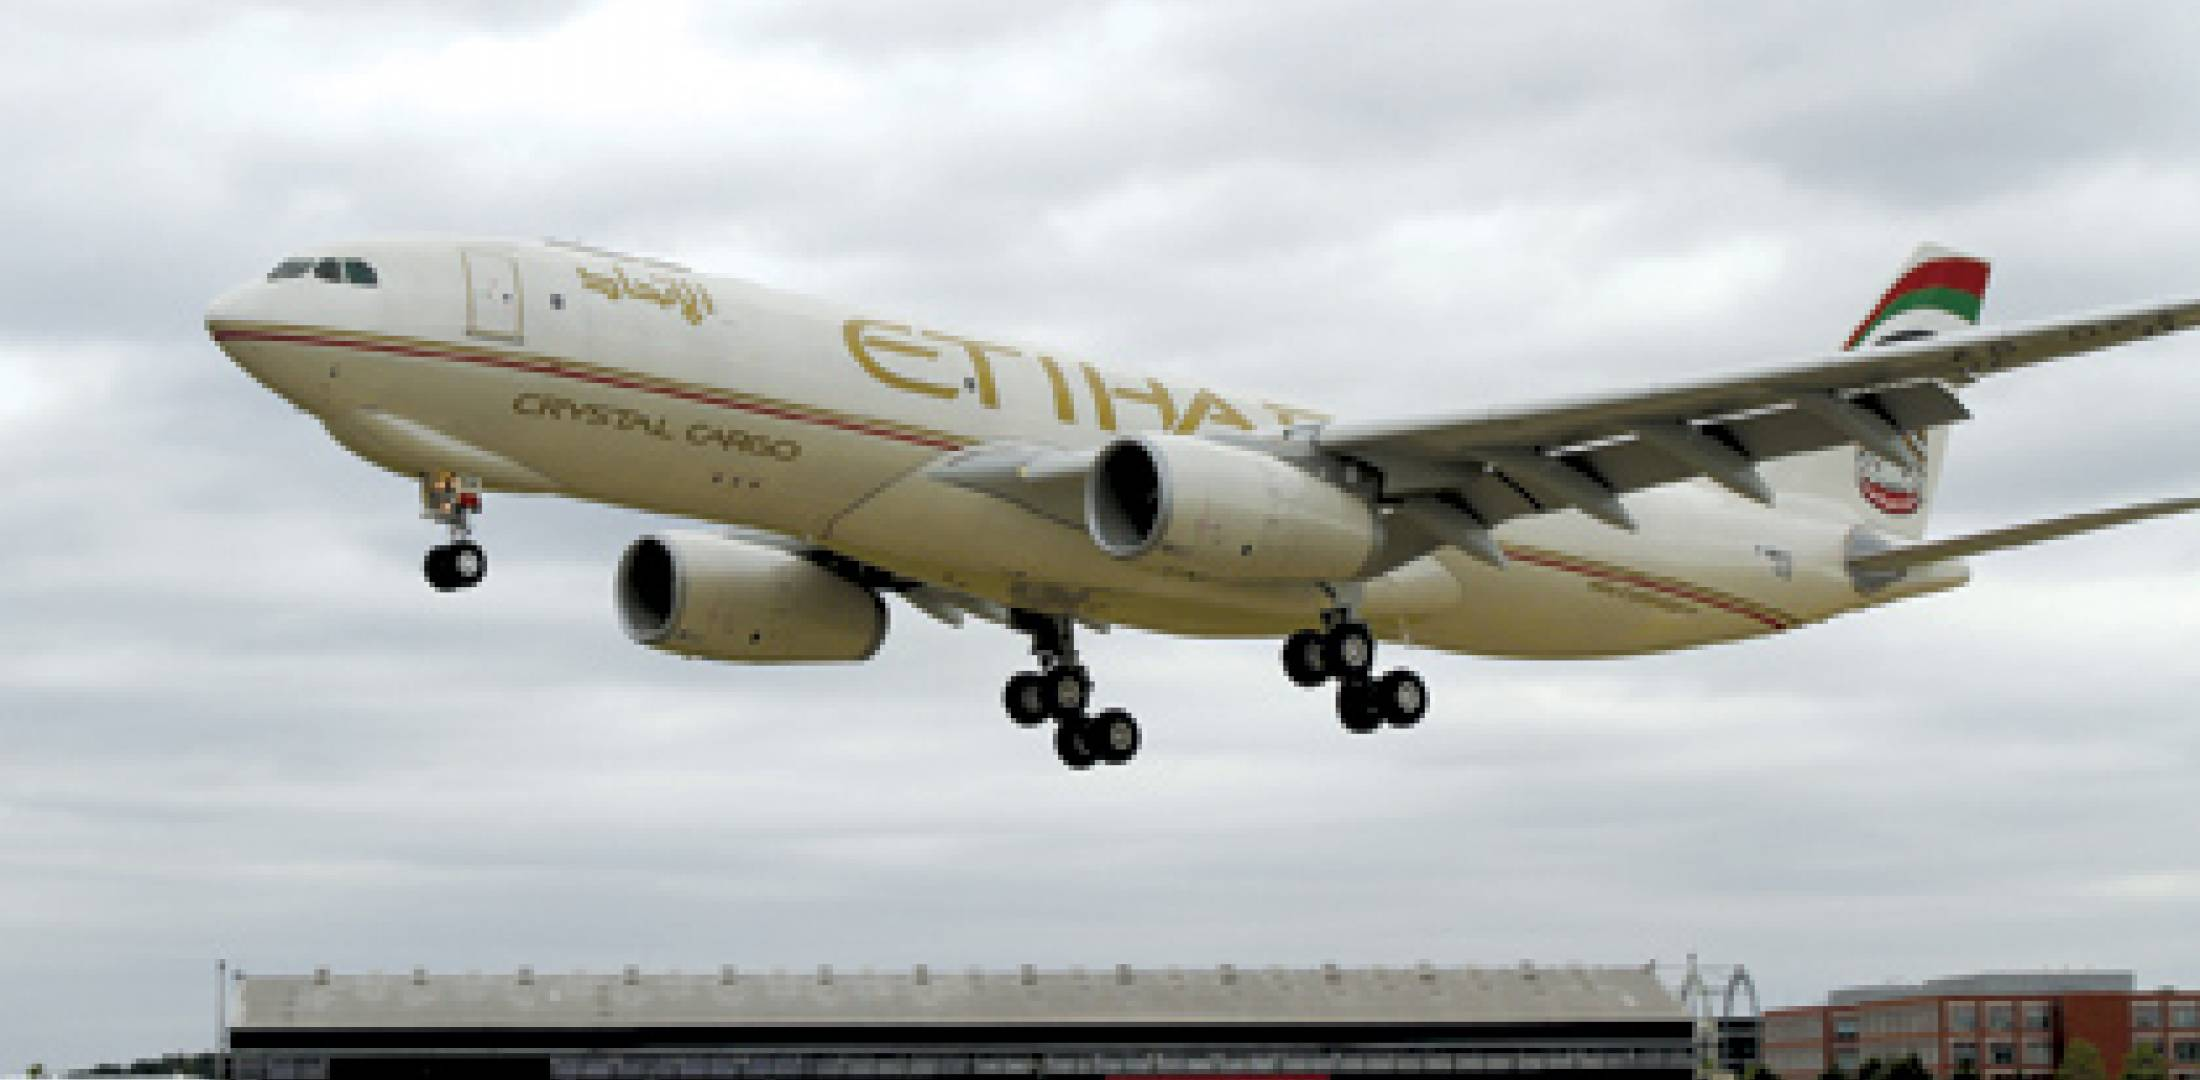 Etihad Airways' new Airbus A330-300 freighter touches down to take its prime ...